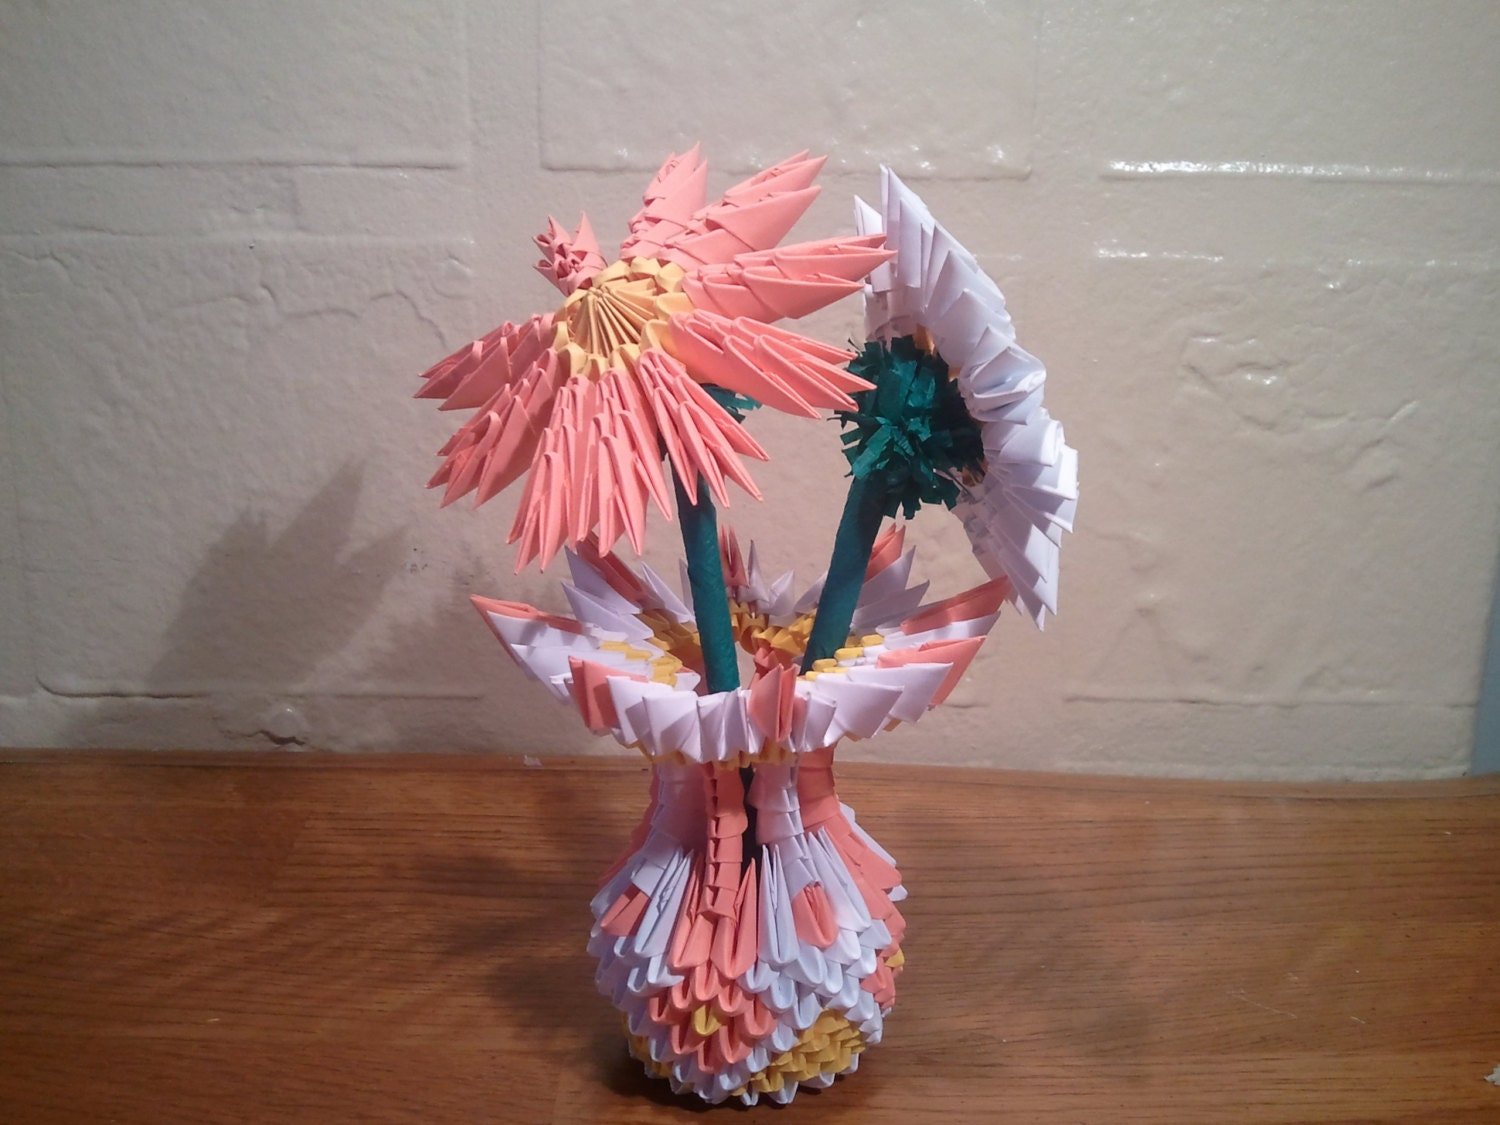 3d origami small vase with flowers - photo#44